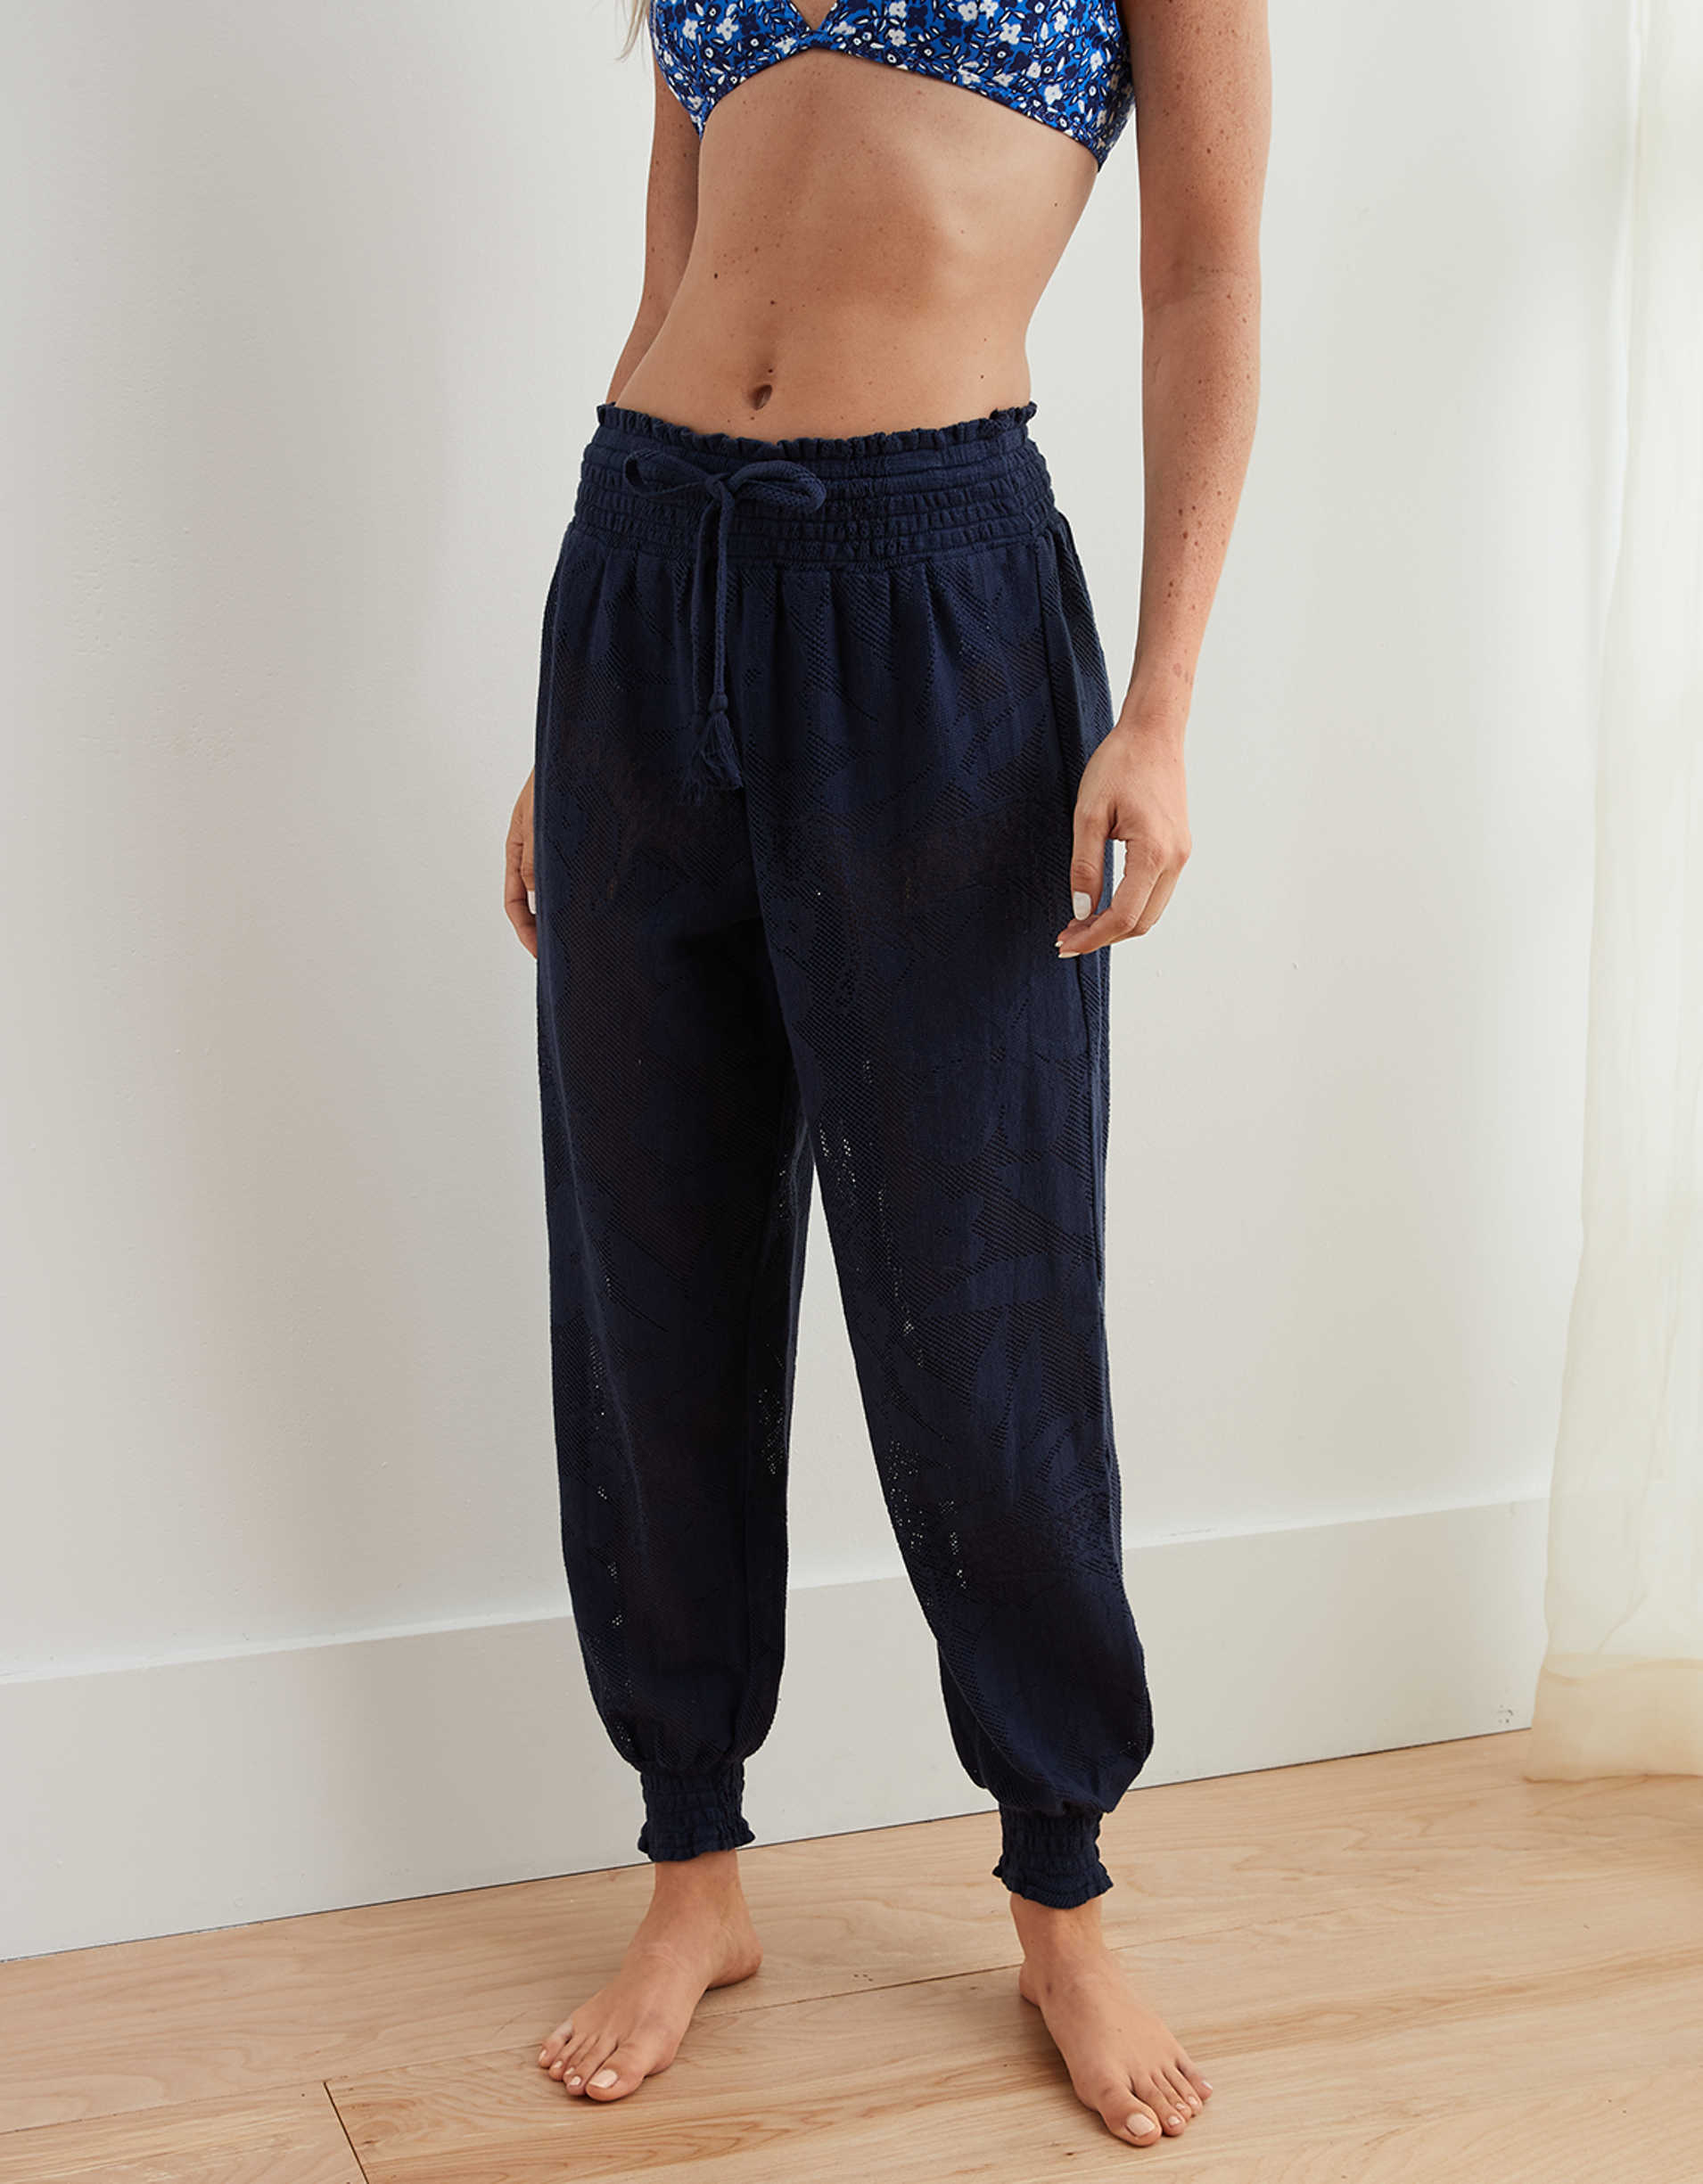 Aerie Lace Beach Jogger